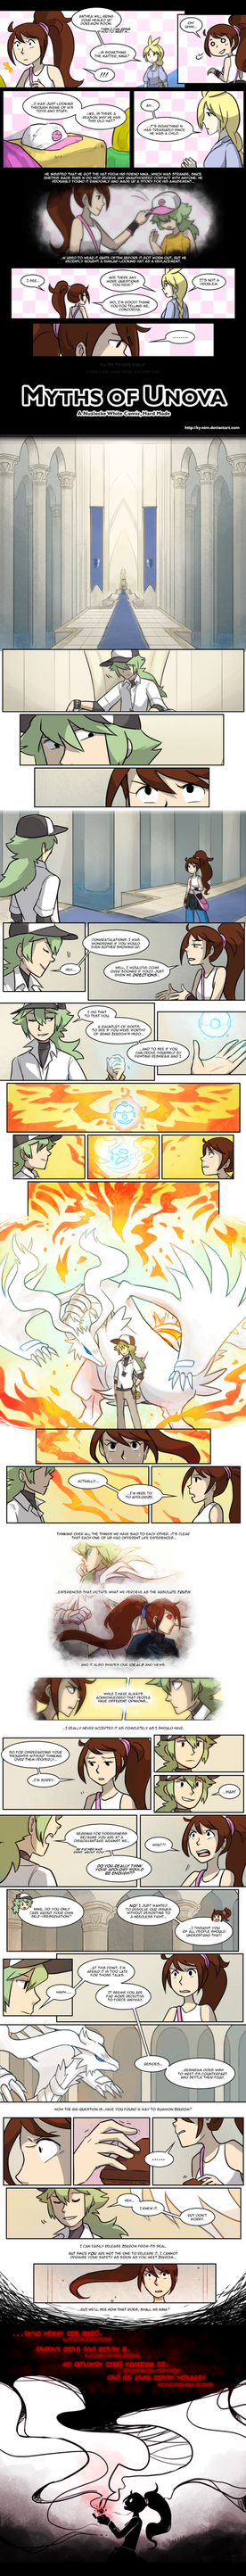 Nuzlocke White: The Throne Room by ky-nim